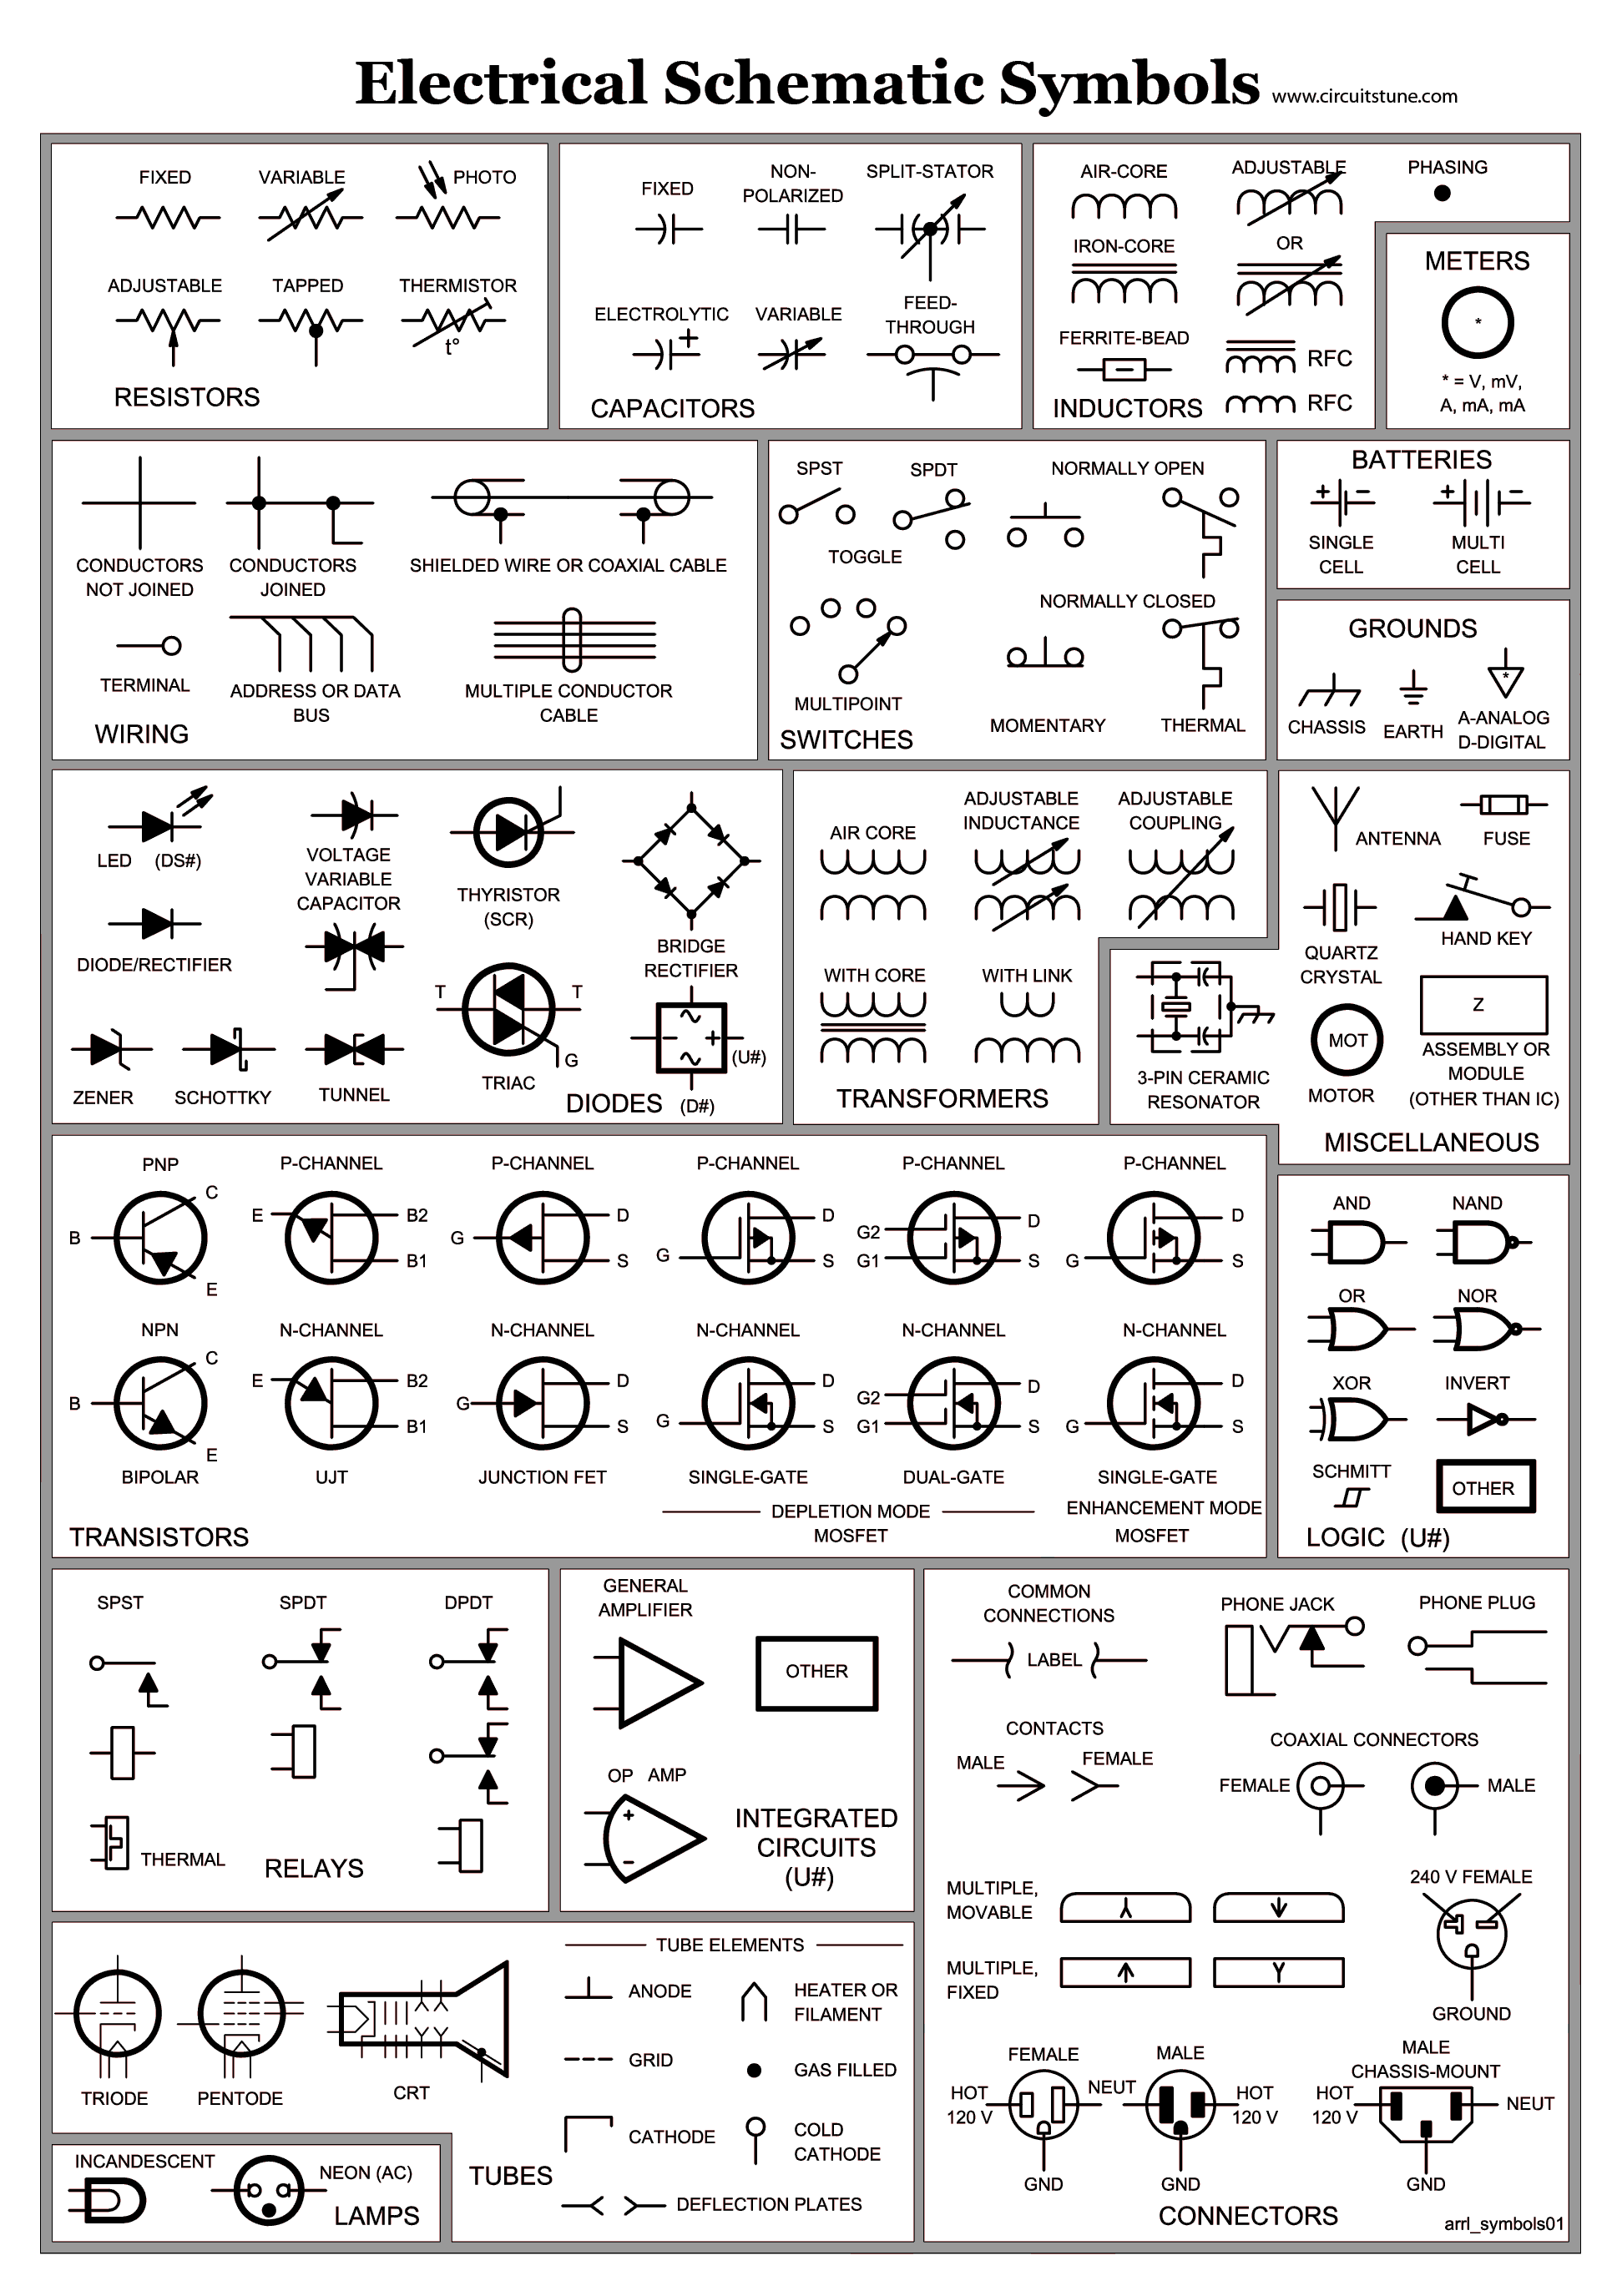 hight resolution of electrical schematic symbols wire diagram symbols automotive wiring rh pinterest com air conditioning wiring ac wiring diagram symbols